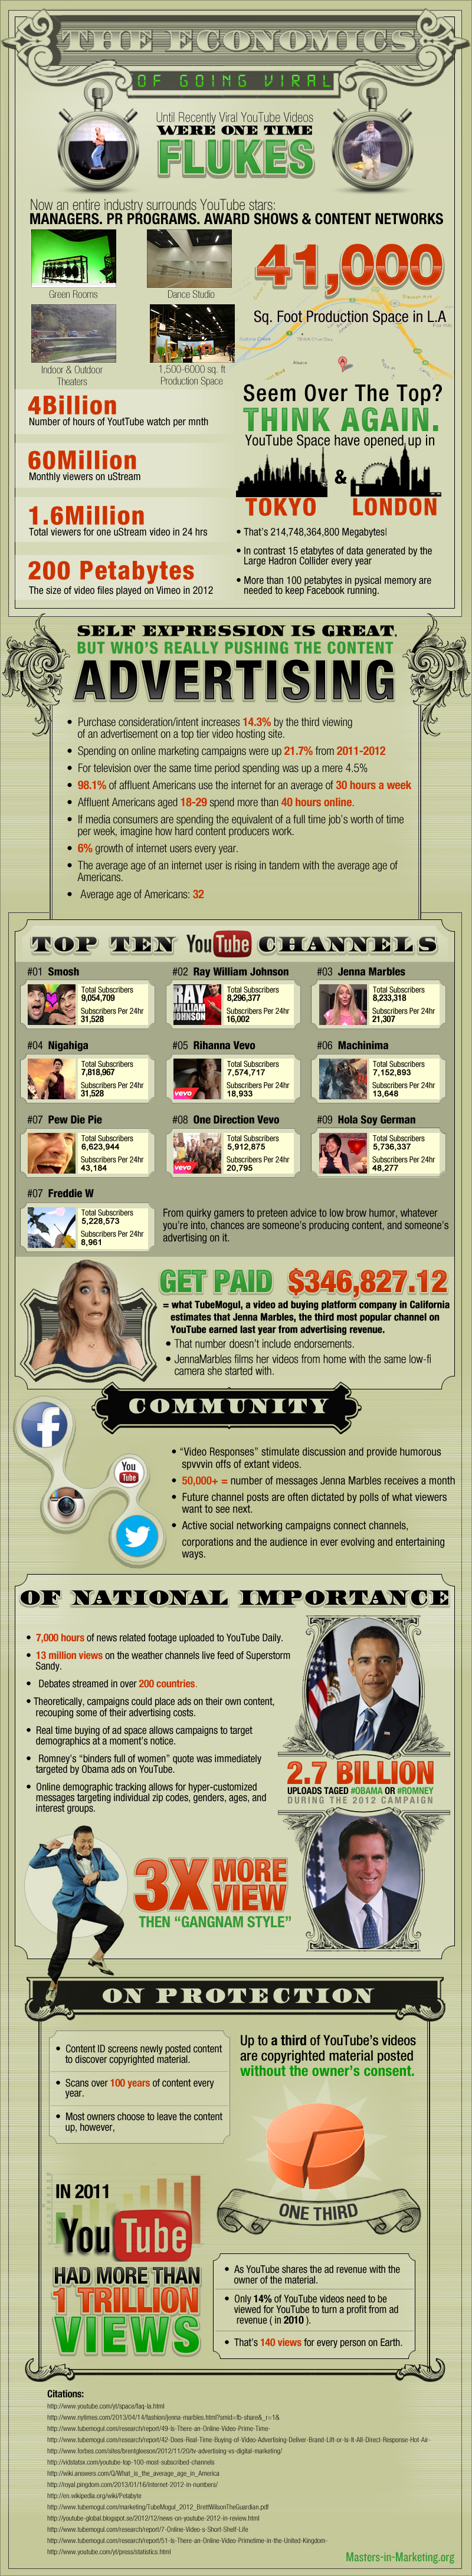 Infographic on the Facts and Figures of YouTbe Viral Video